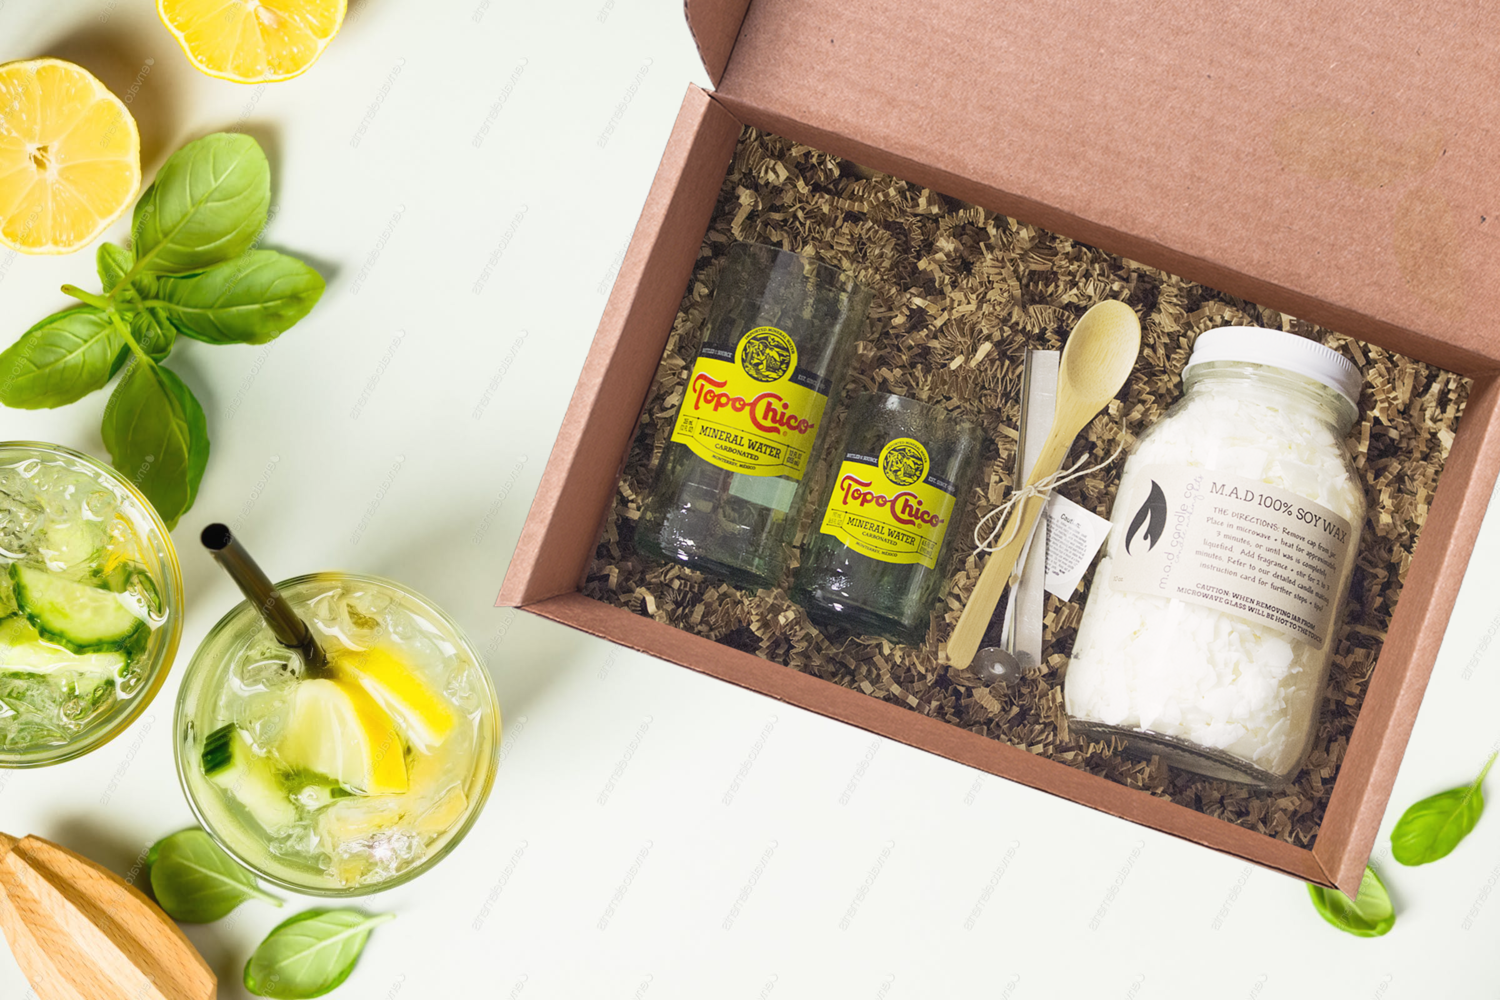 Topo Chico Candle Making Kit